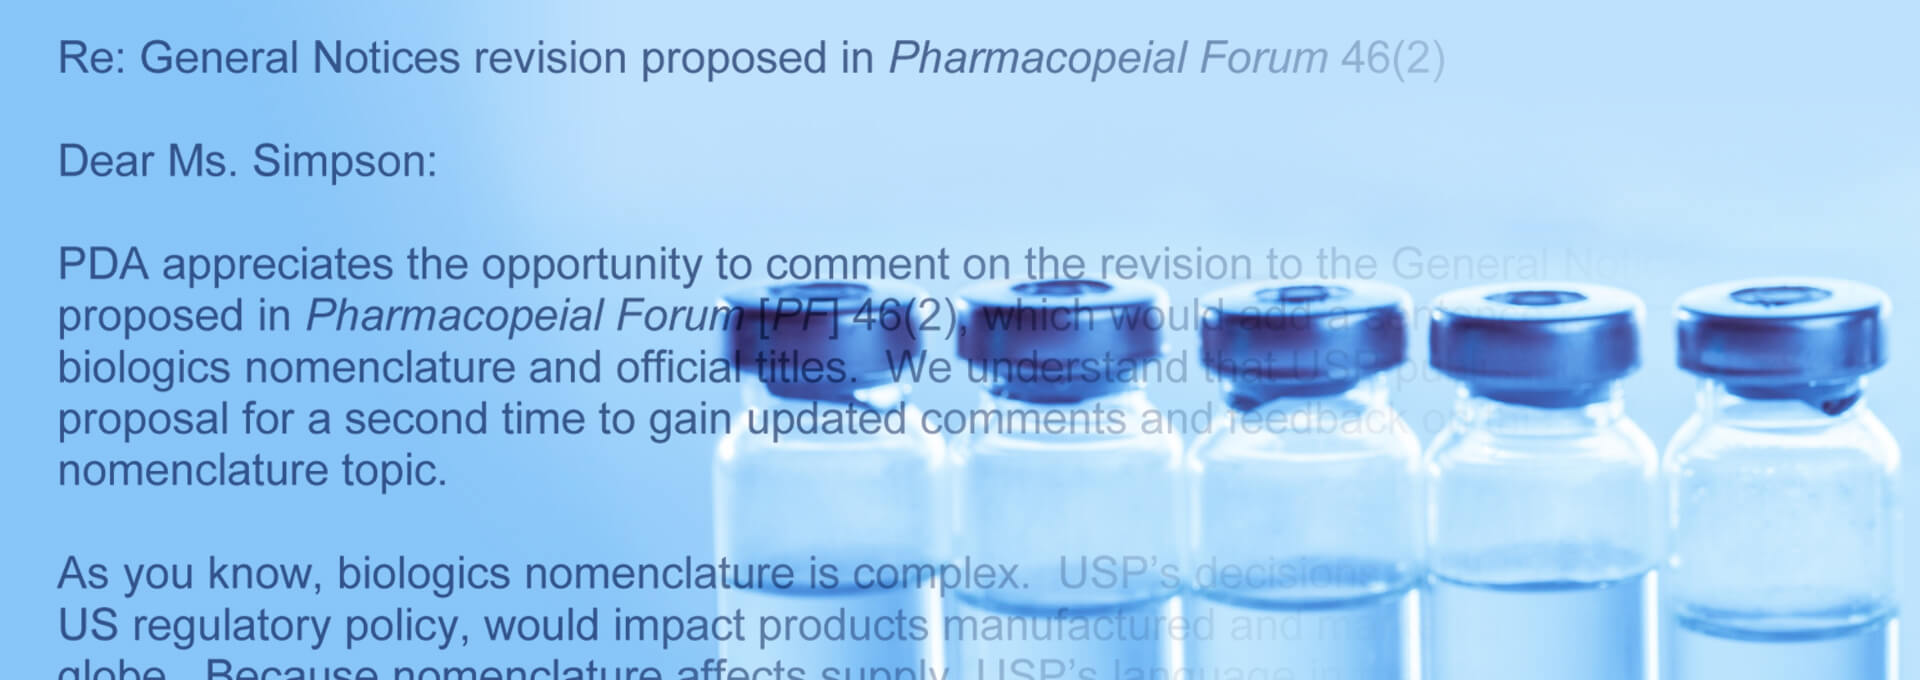 PDA Requests Pause to USP's Biologics Nomenclature Proposal